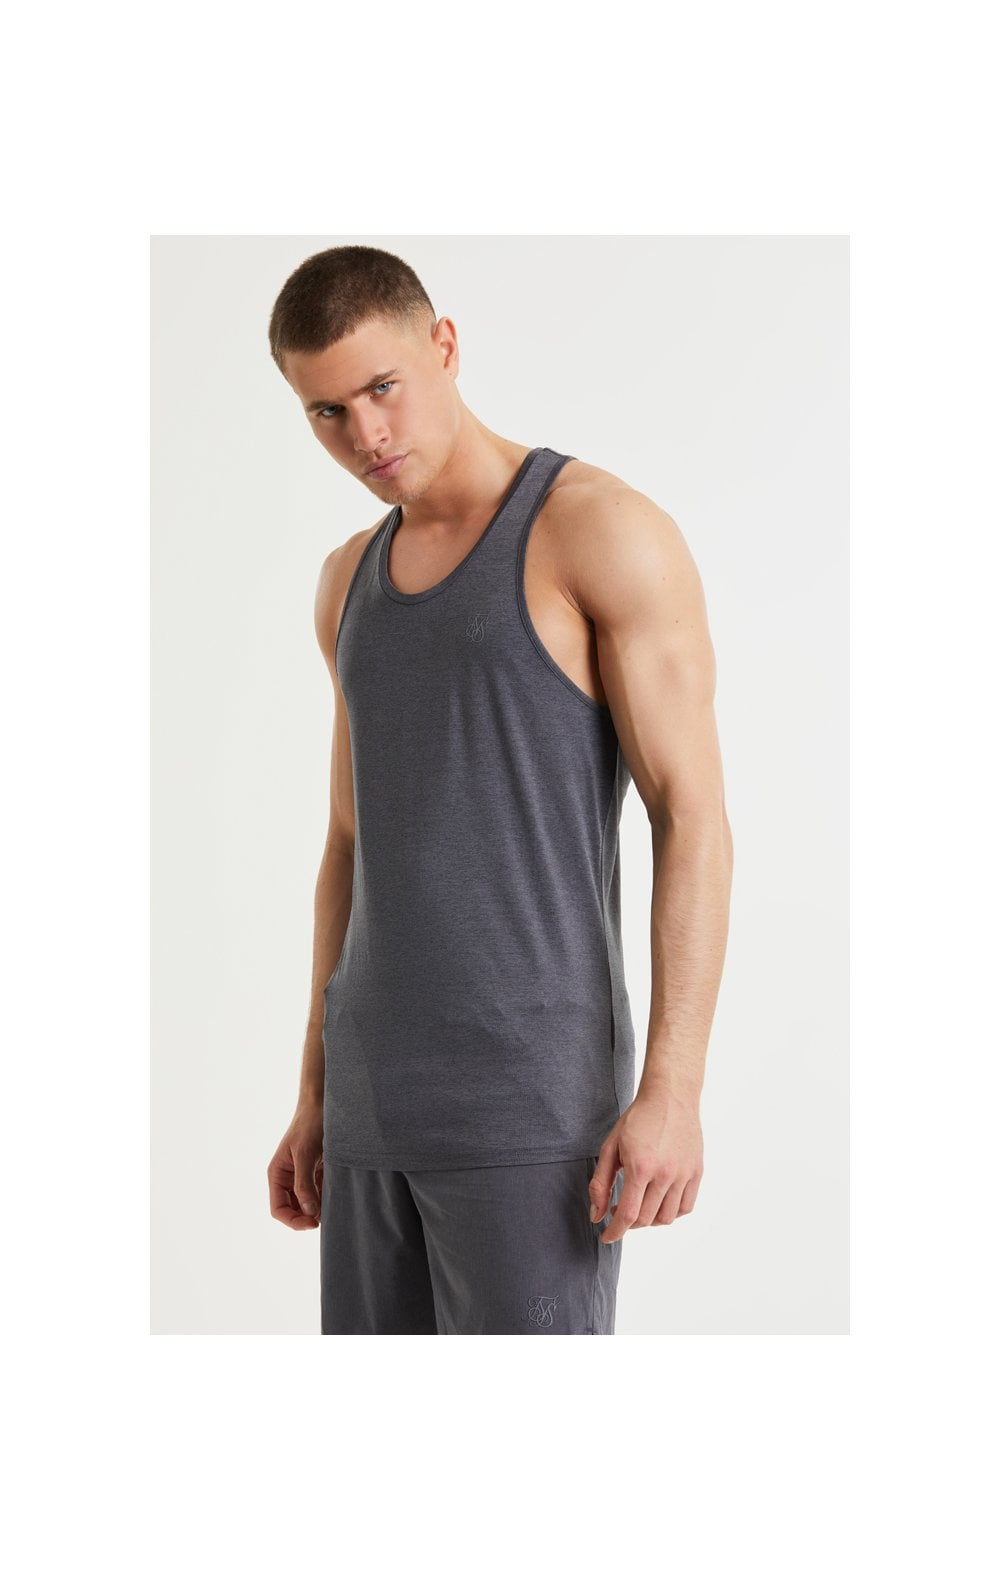 Load image into Gallery viewer, SikSilk Pressure Vest - Charcoal Marl (2)